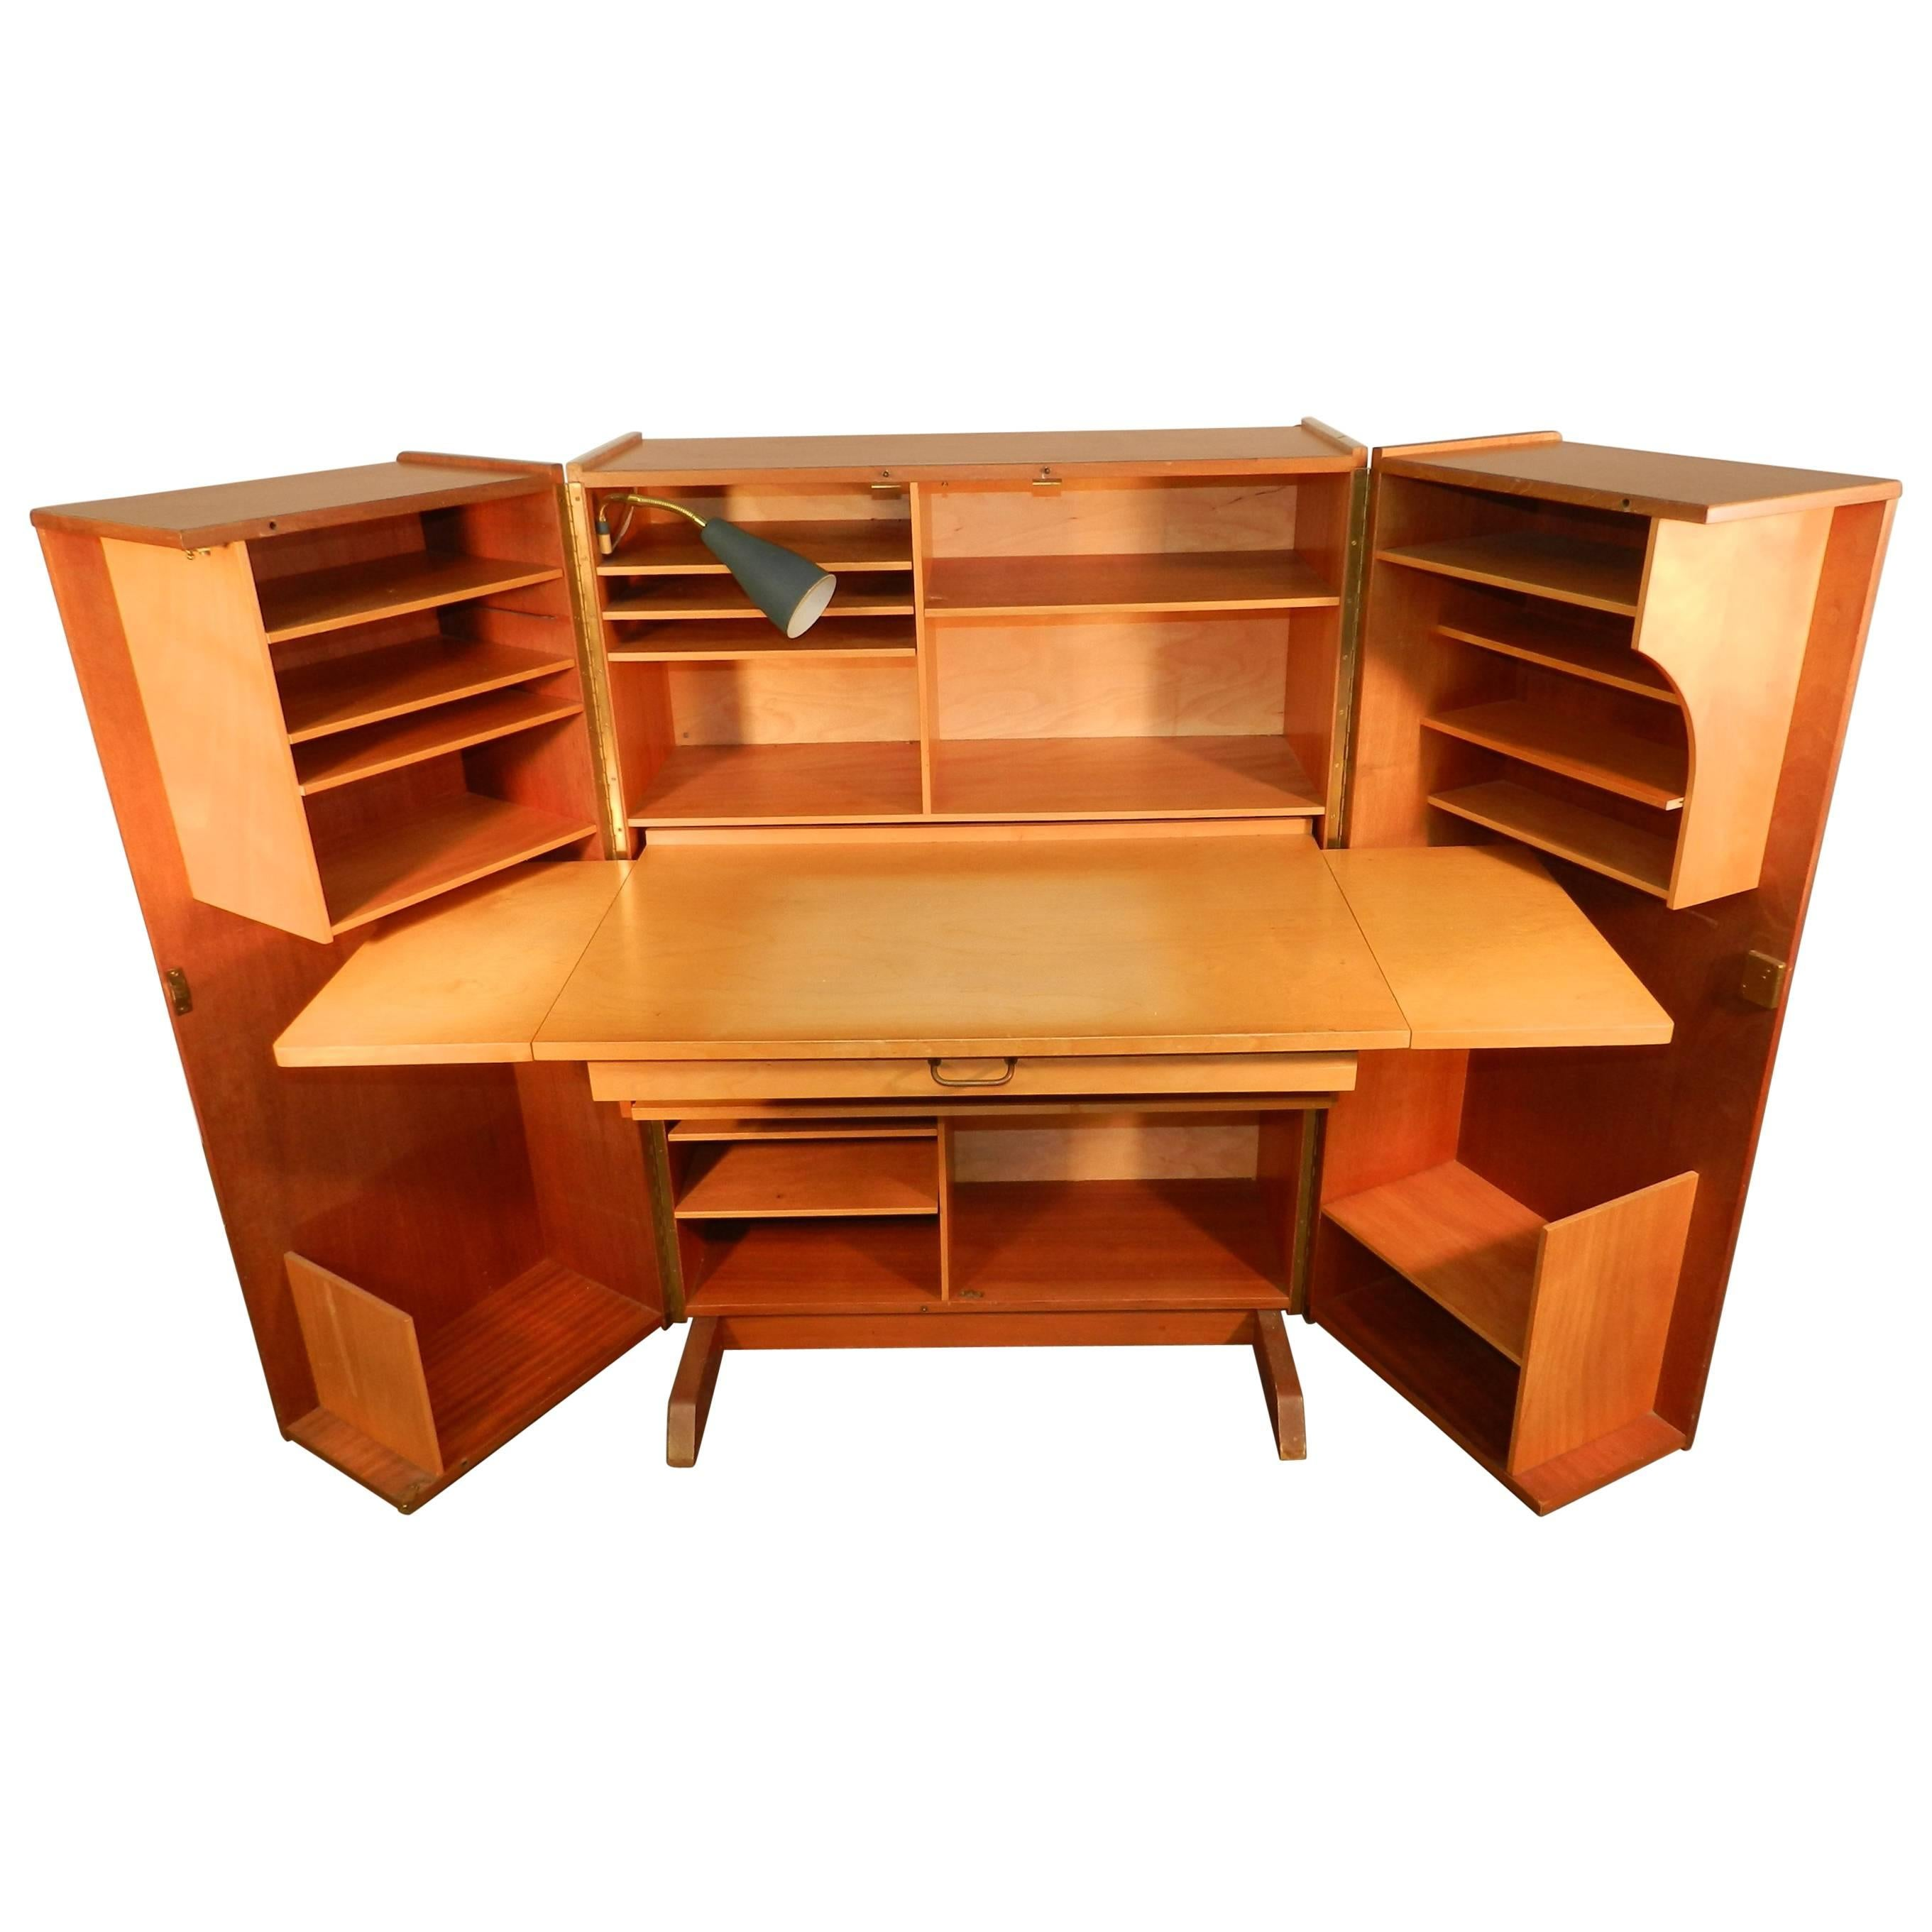 1950 Compact Home Office Desk In Mahogany And Blond Wood For Sale At 1stdibs